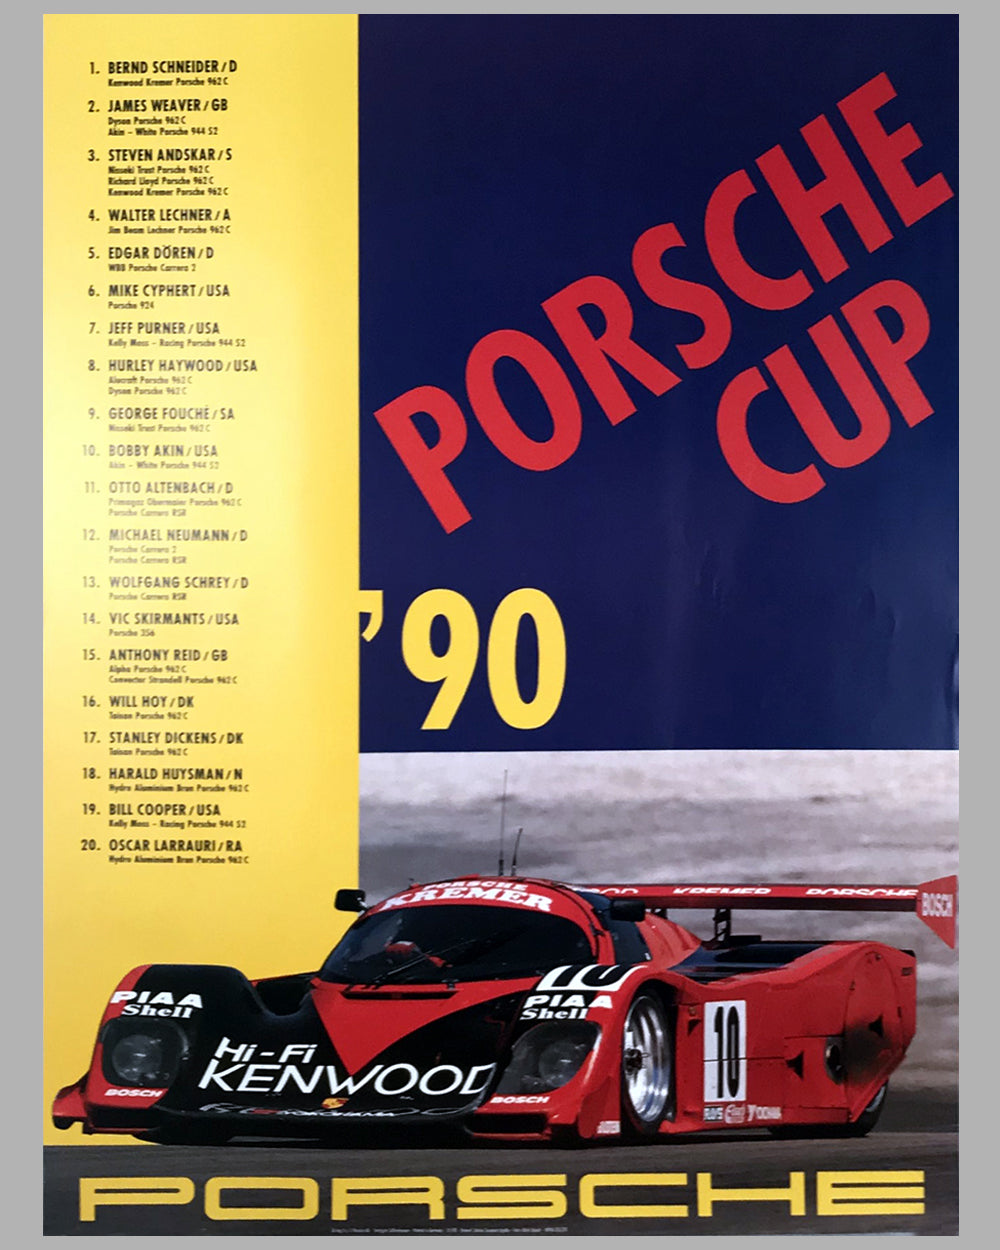 1990 Porsche Cup Victory Poster